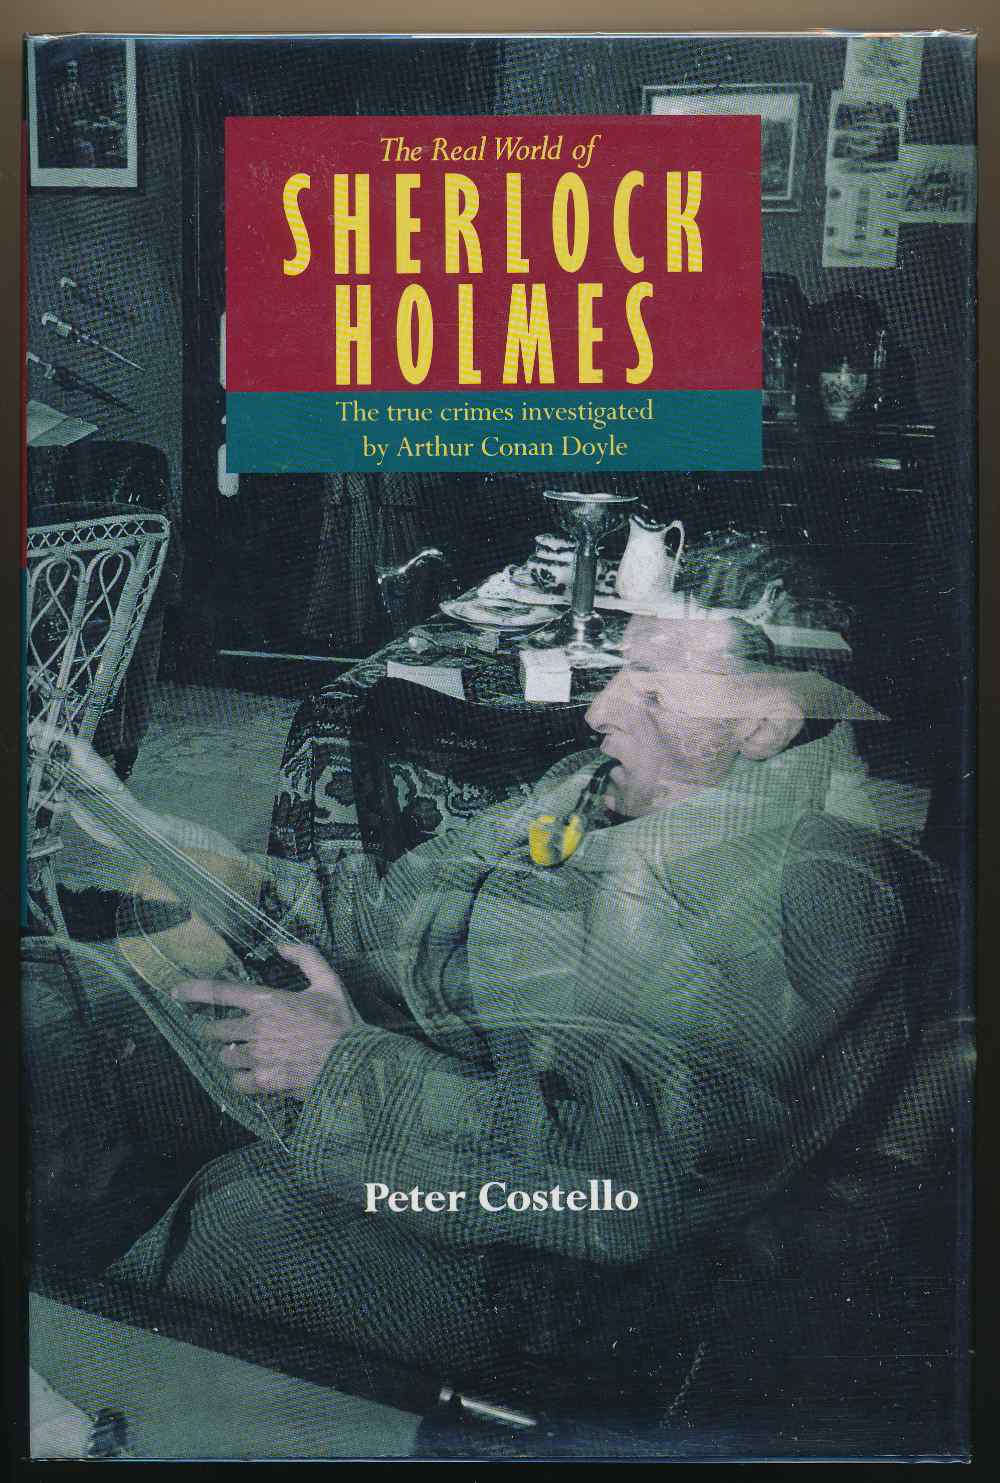 The real world of Sherlock Holmes : the true crimes investigated by Arthur Conan Doyle